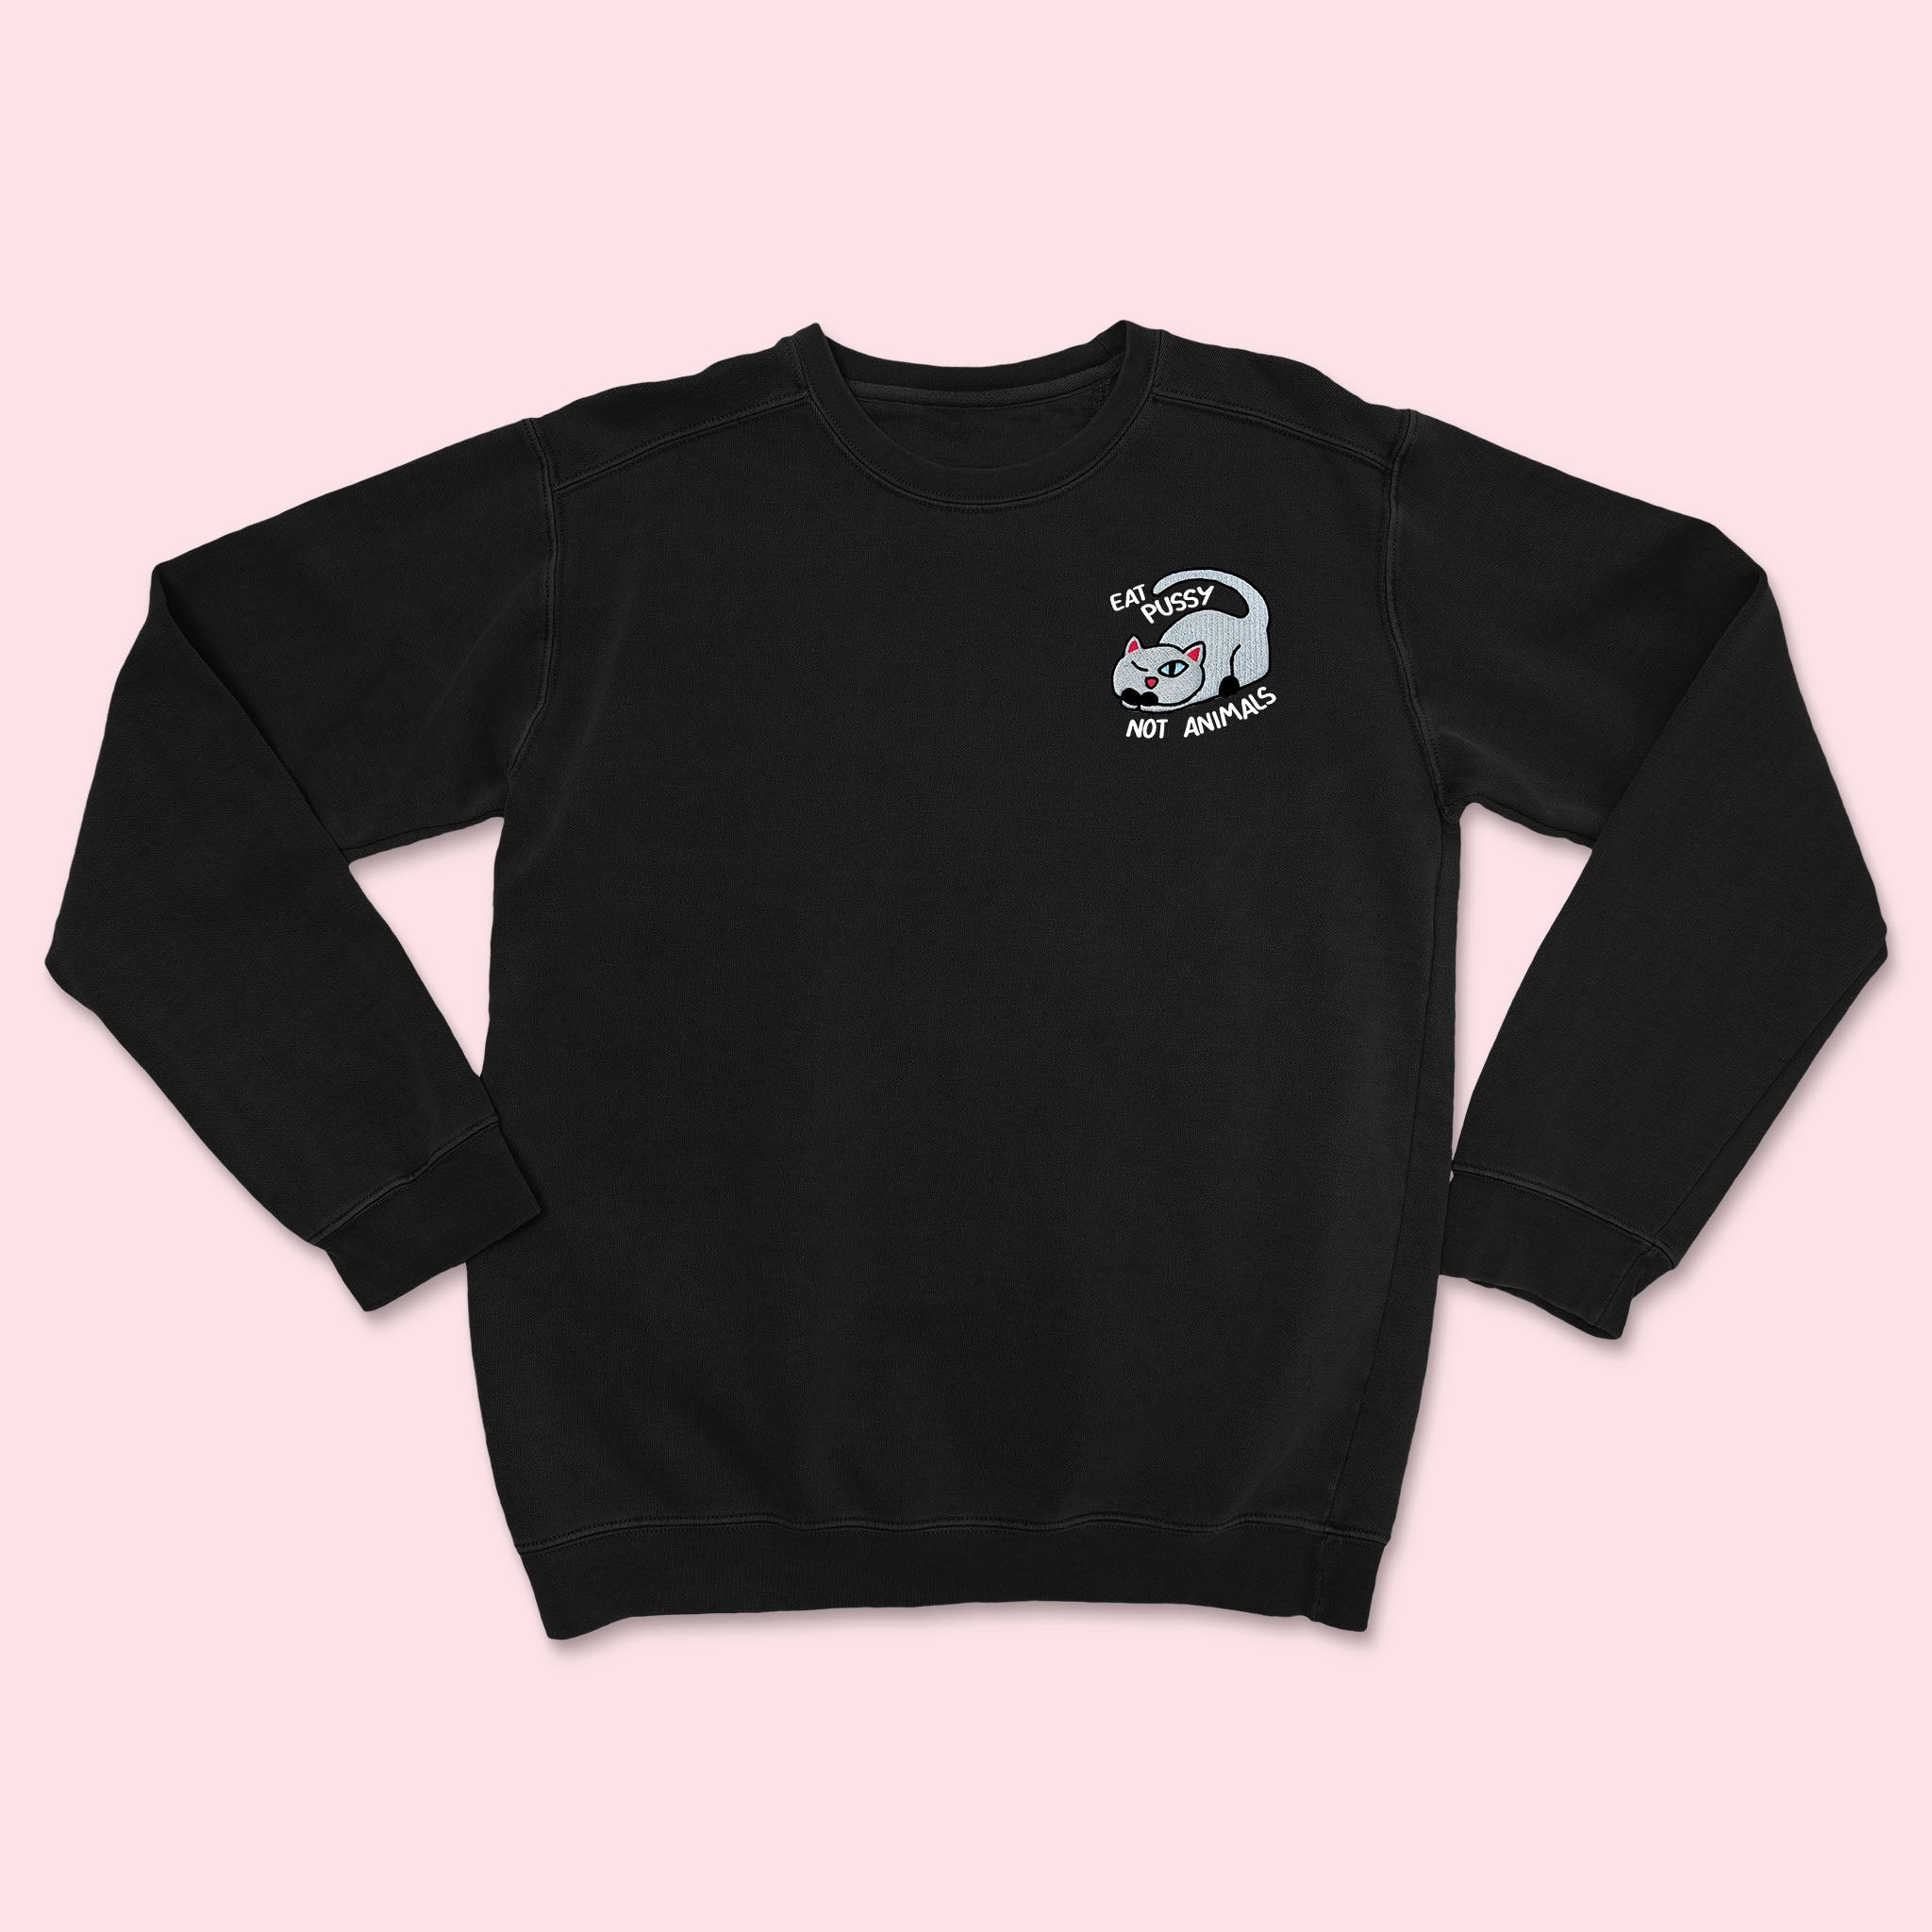 EAT PUSSY NOT ANIMALS- Embroidered Unisex Sweatshirt